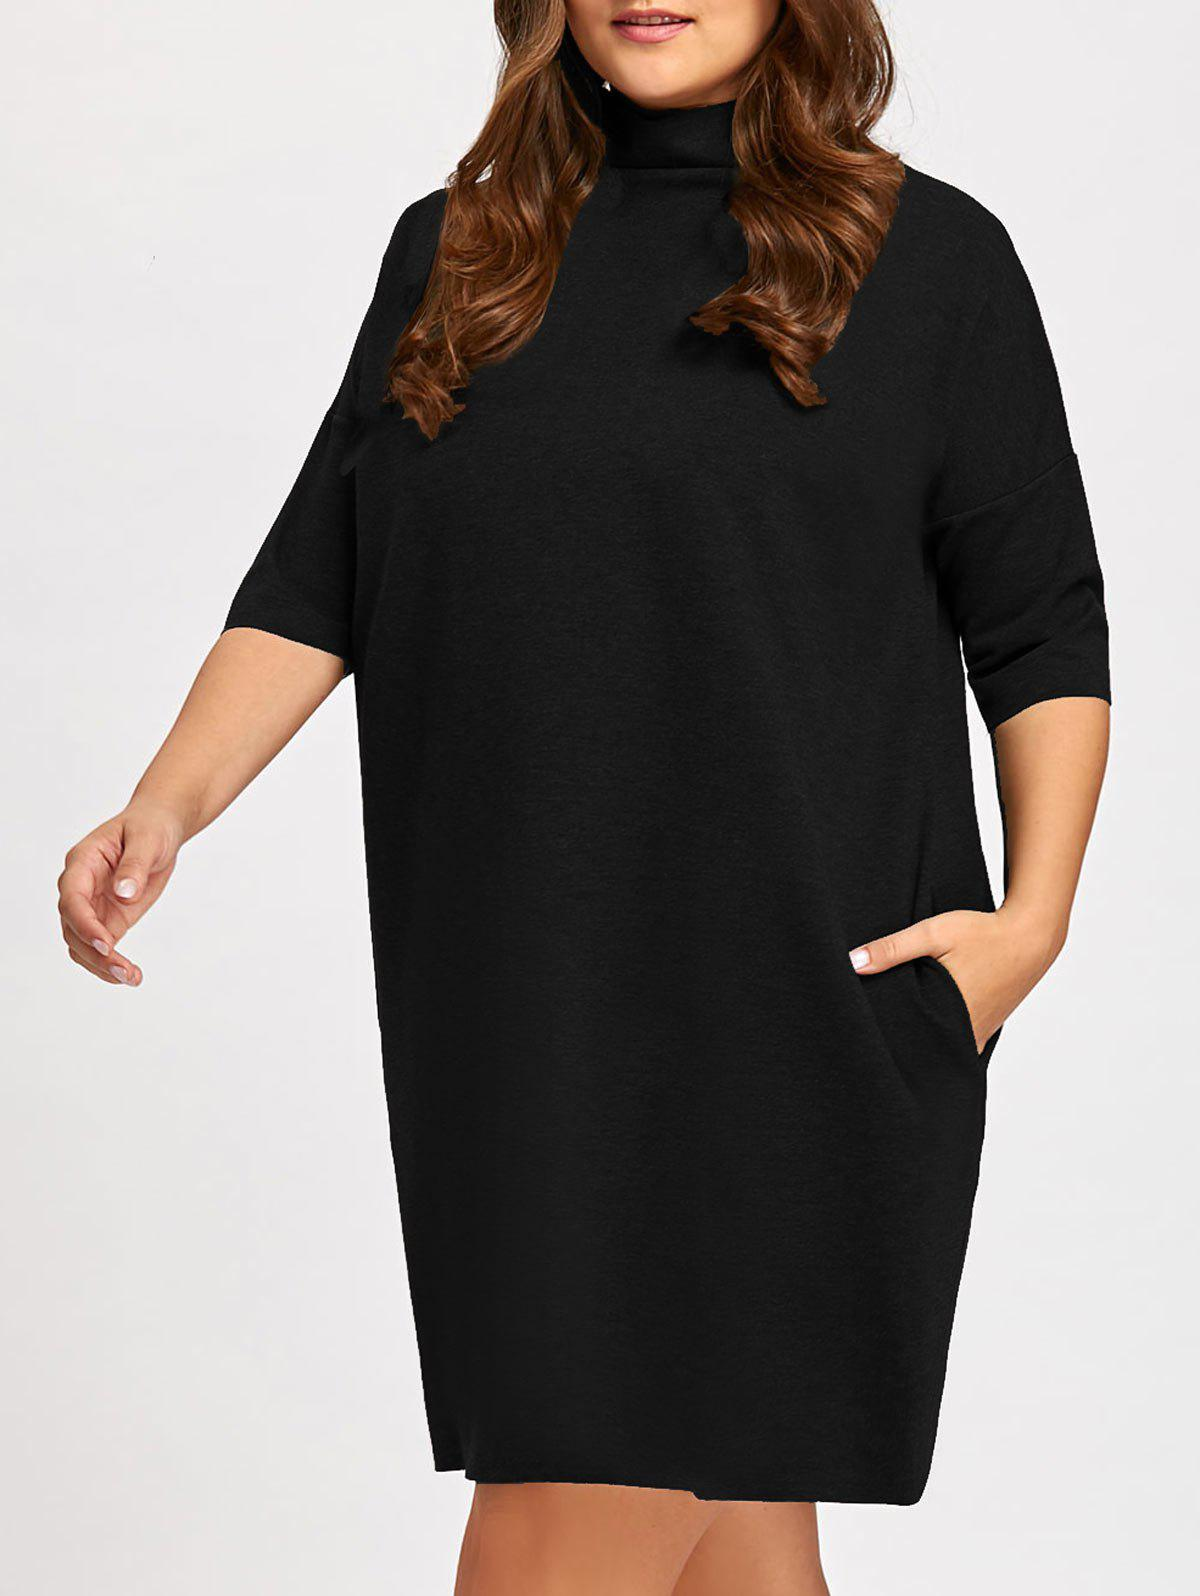 Buy Casual Plus Size Mock Neck Dolman Sleeve Tunic Dress